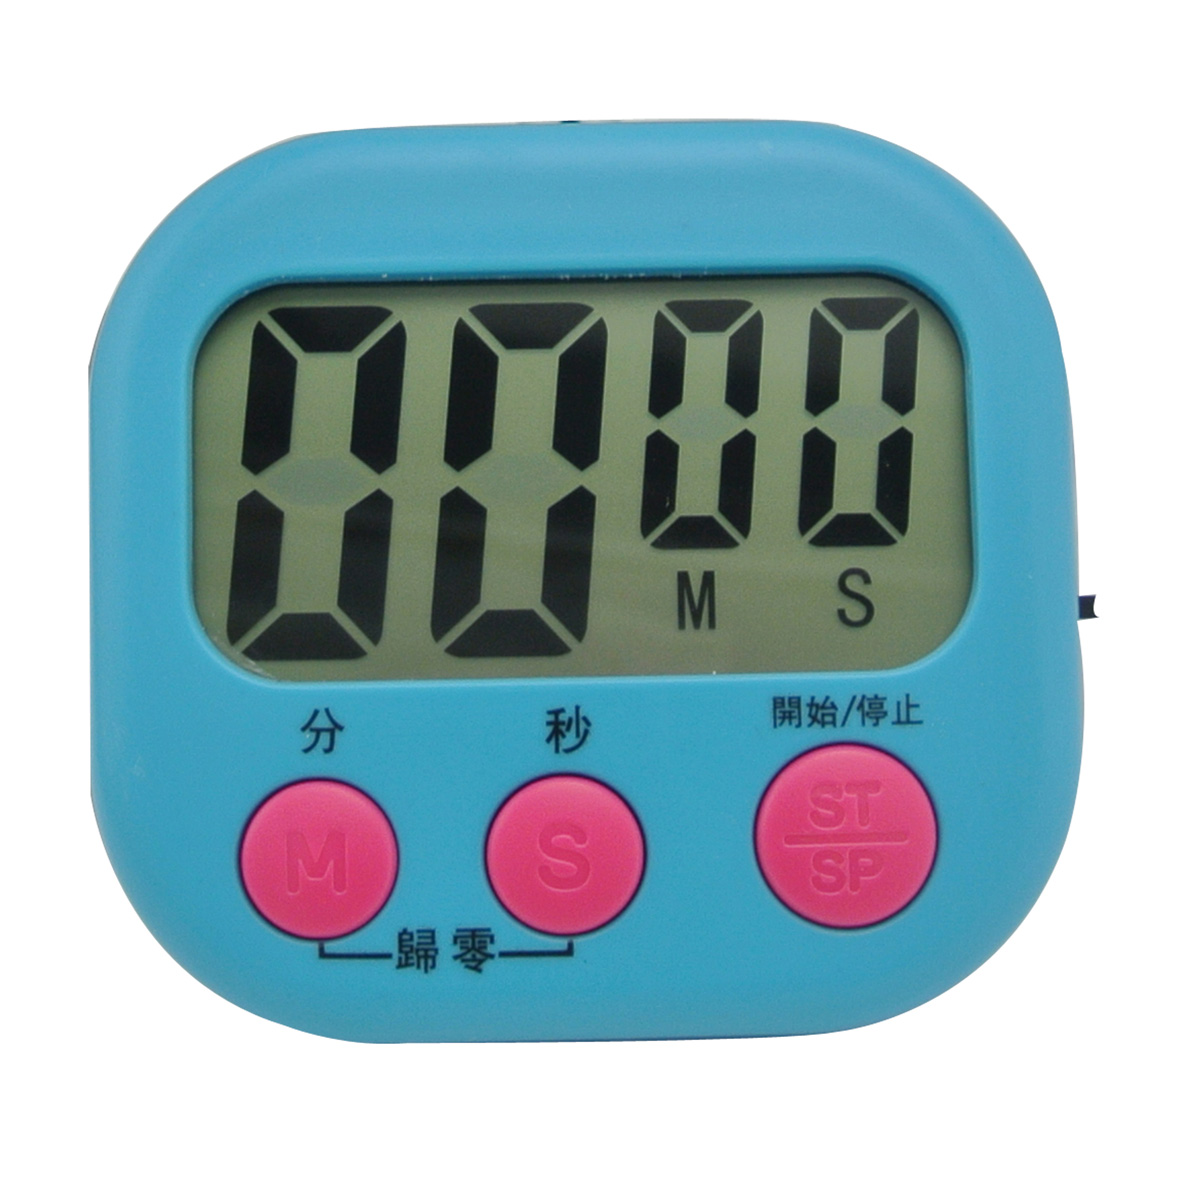 Mechanical Oven Timer Wholesale, Oven Timer Suppliers - Alibaba